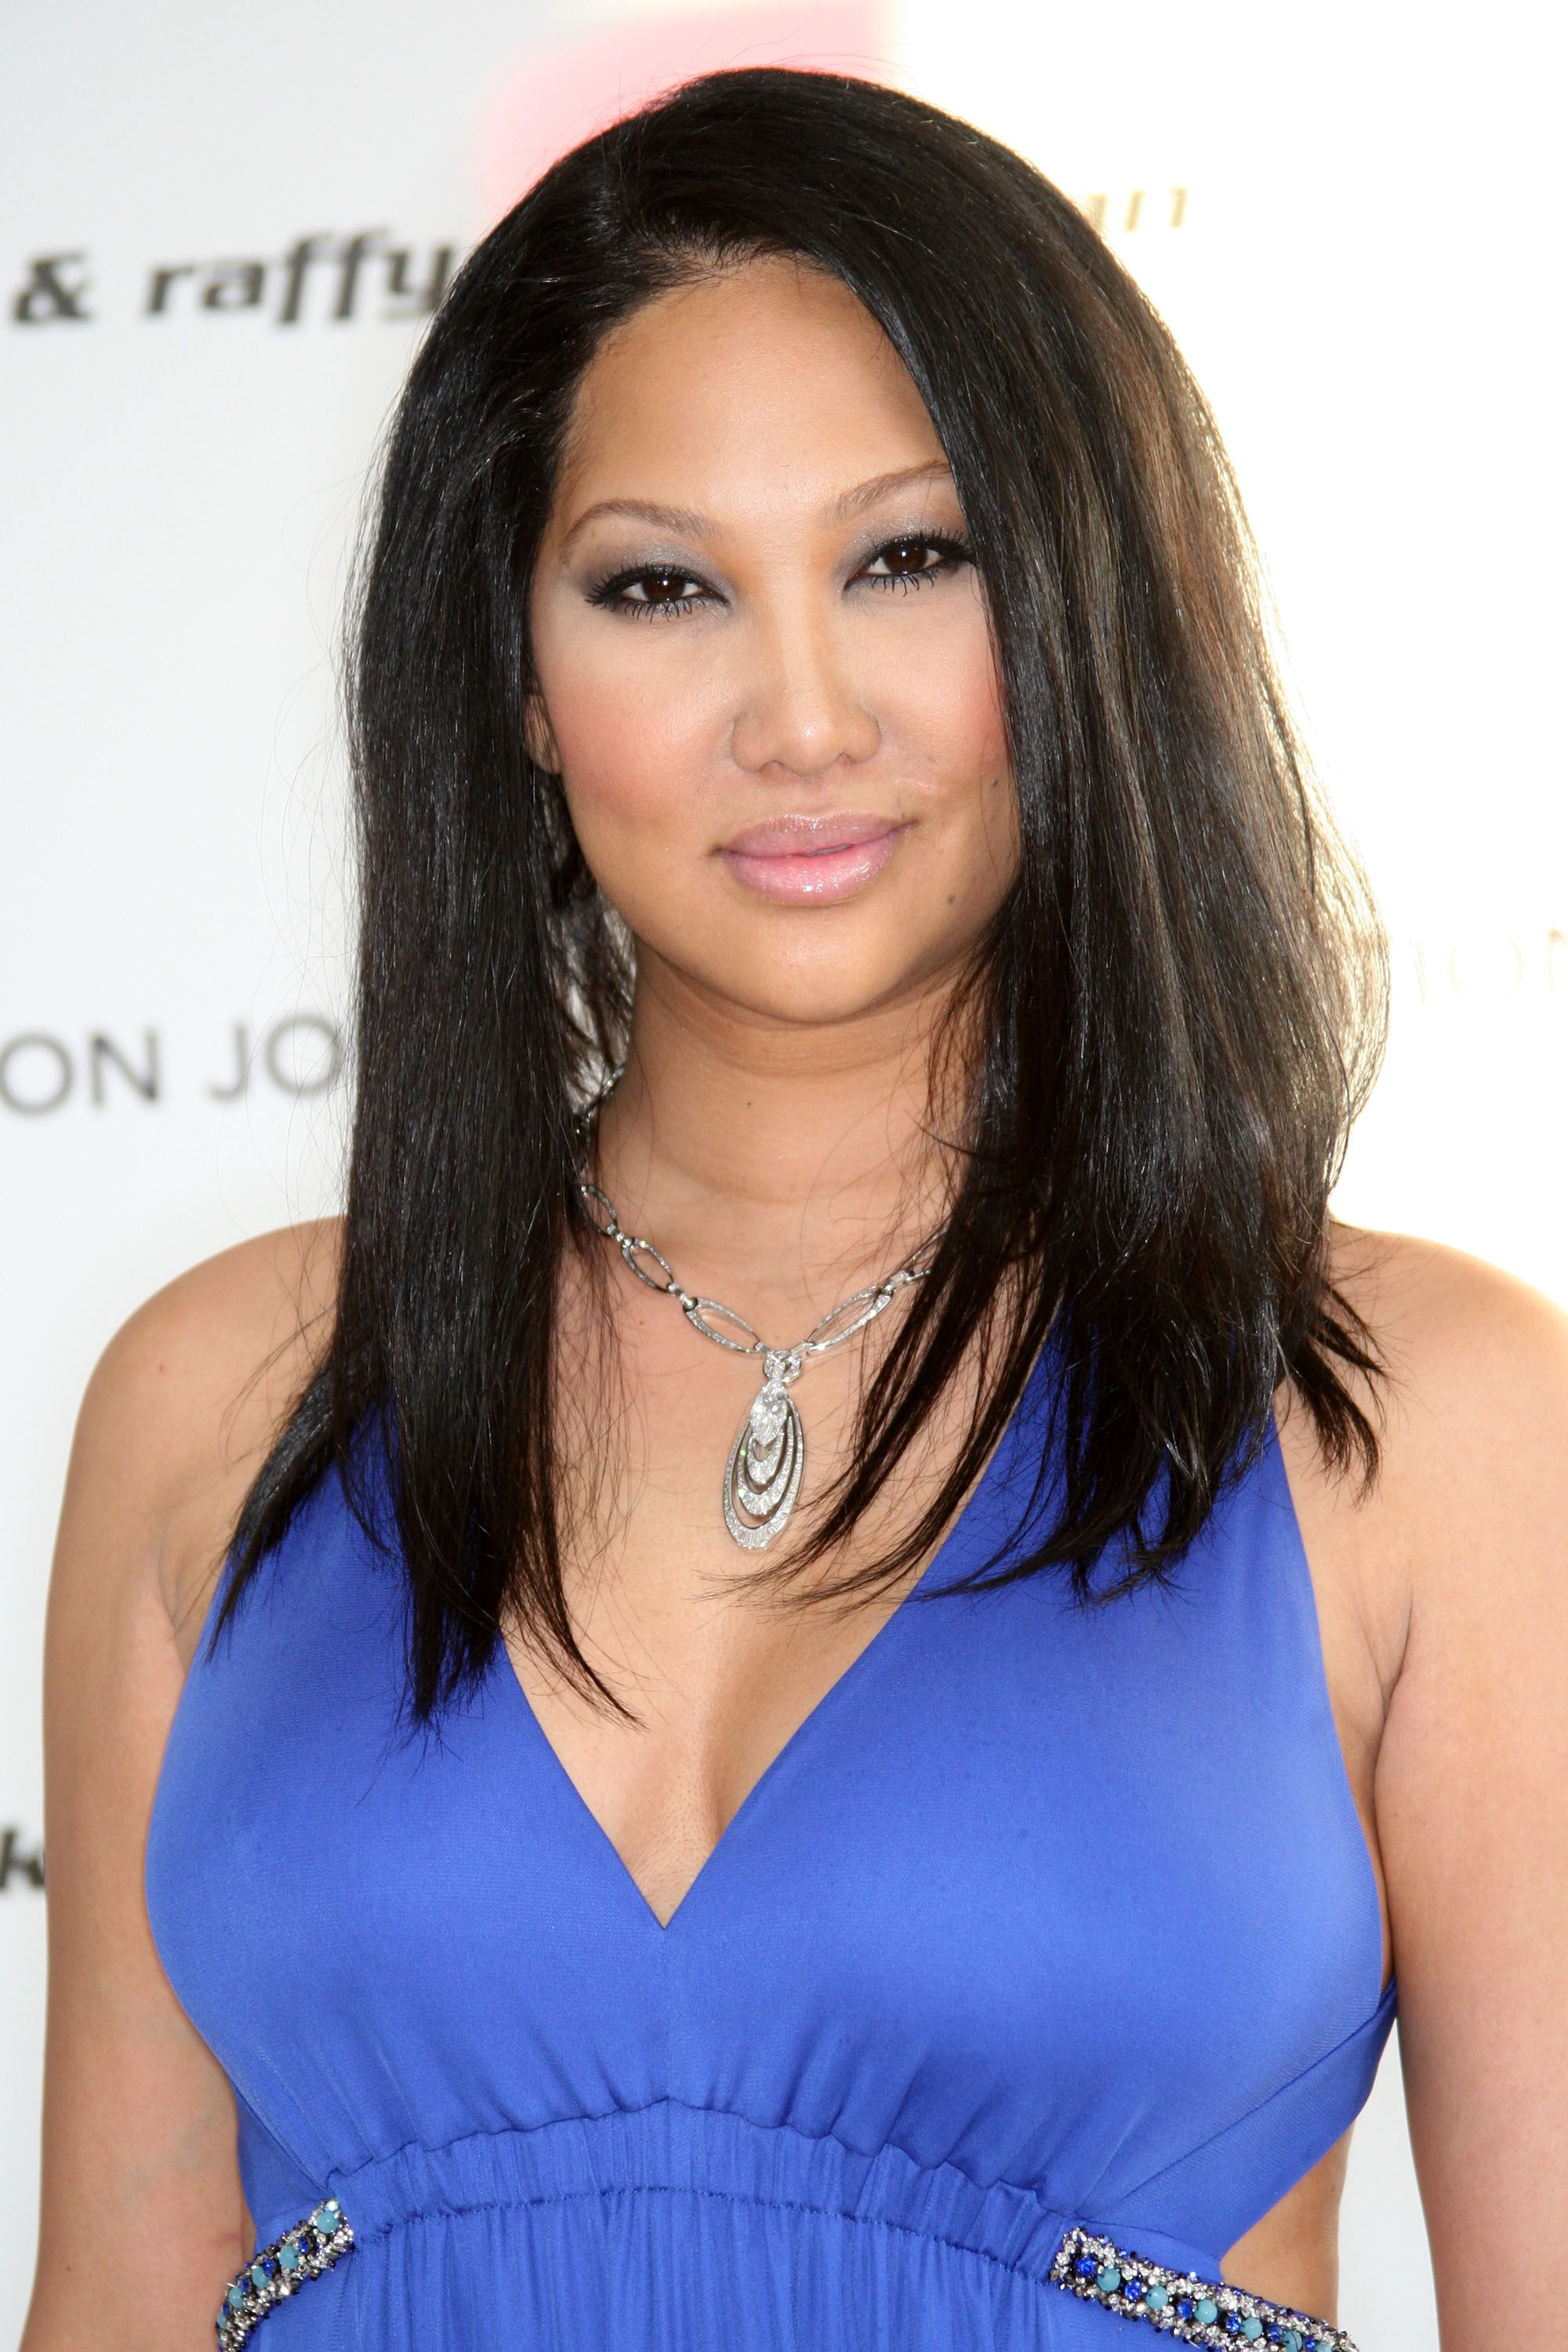 Kimora Lee at the 18th annual Elton John AIDS Foundation Oscar Party held at Pacific Design Center on March 7, 2010 in West Hollywood, California | Photo: Getty Images